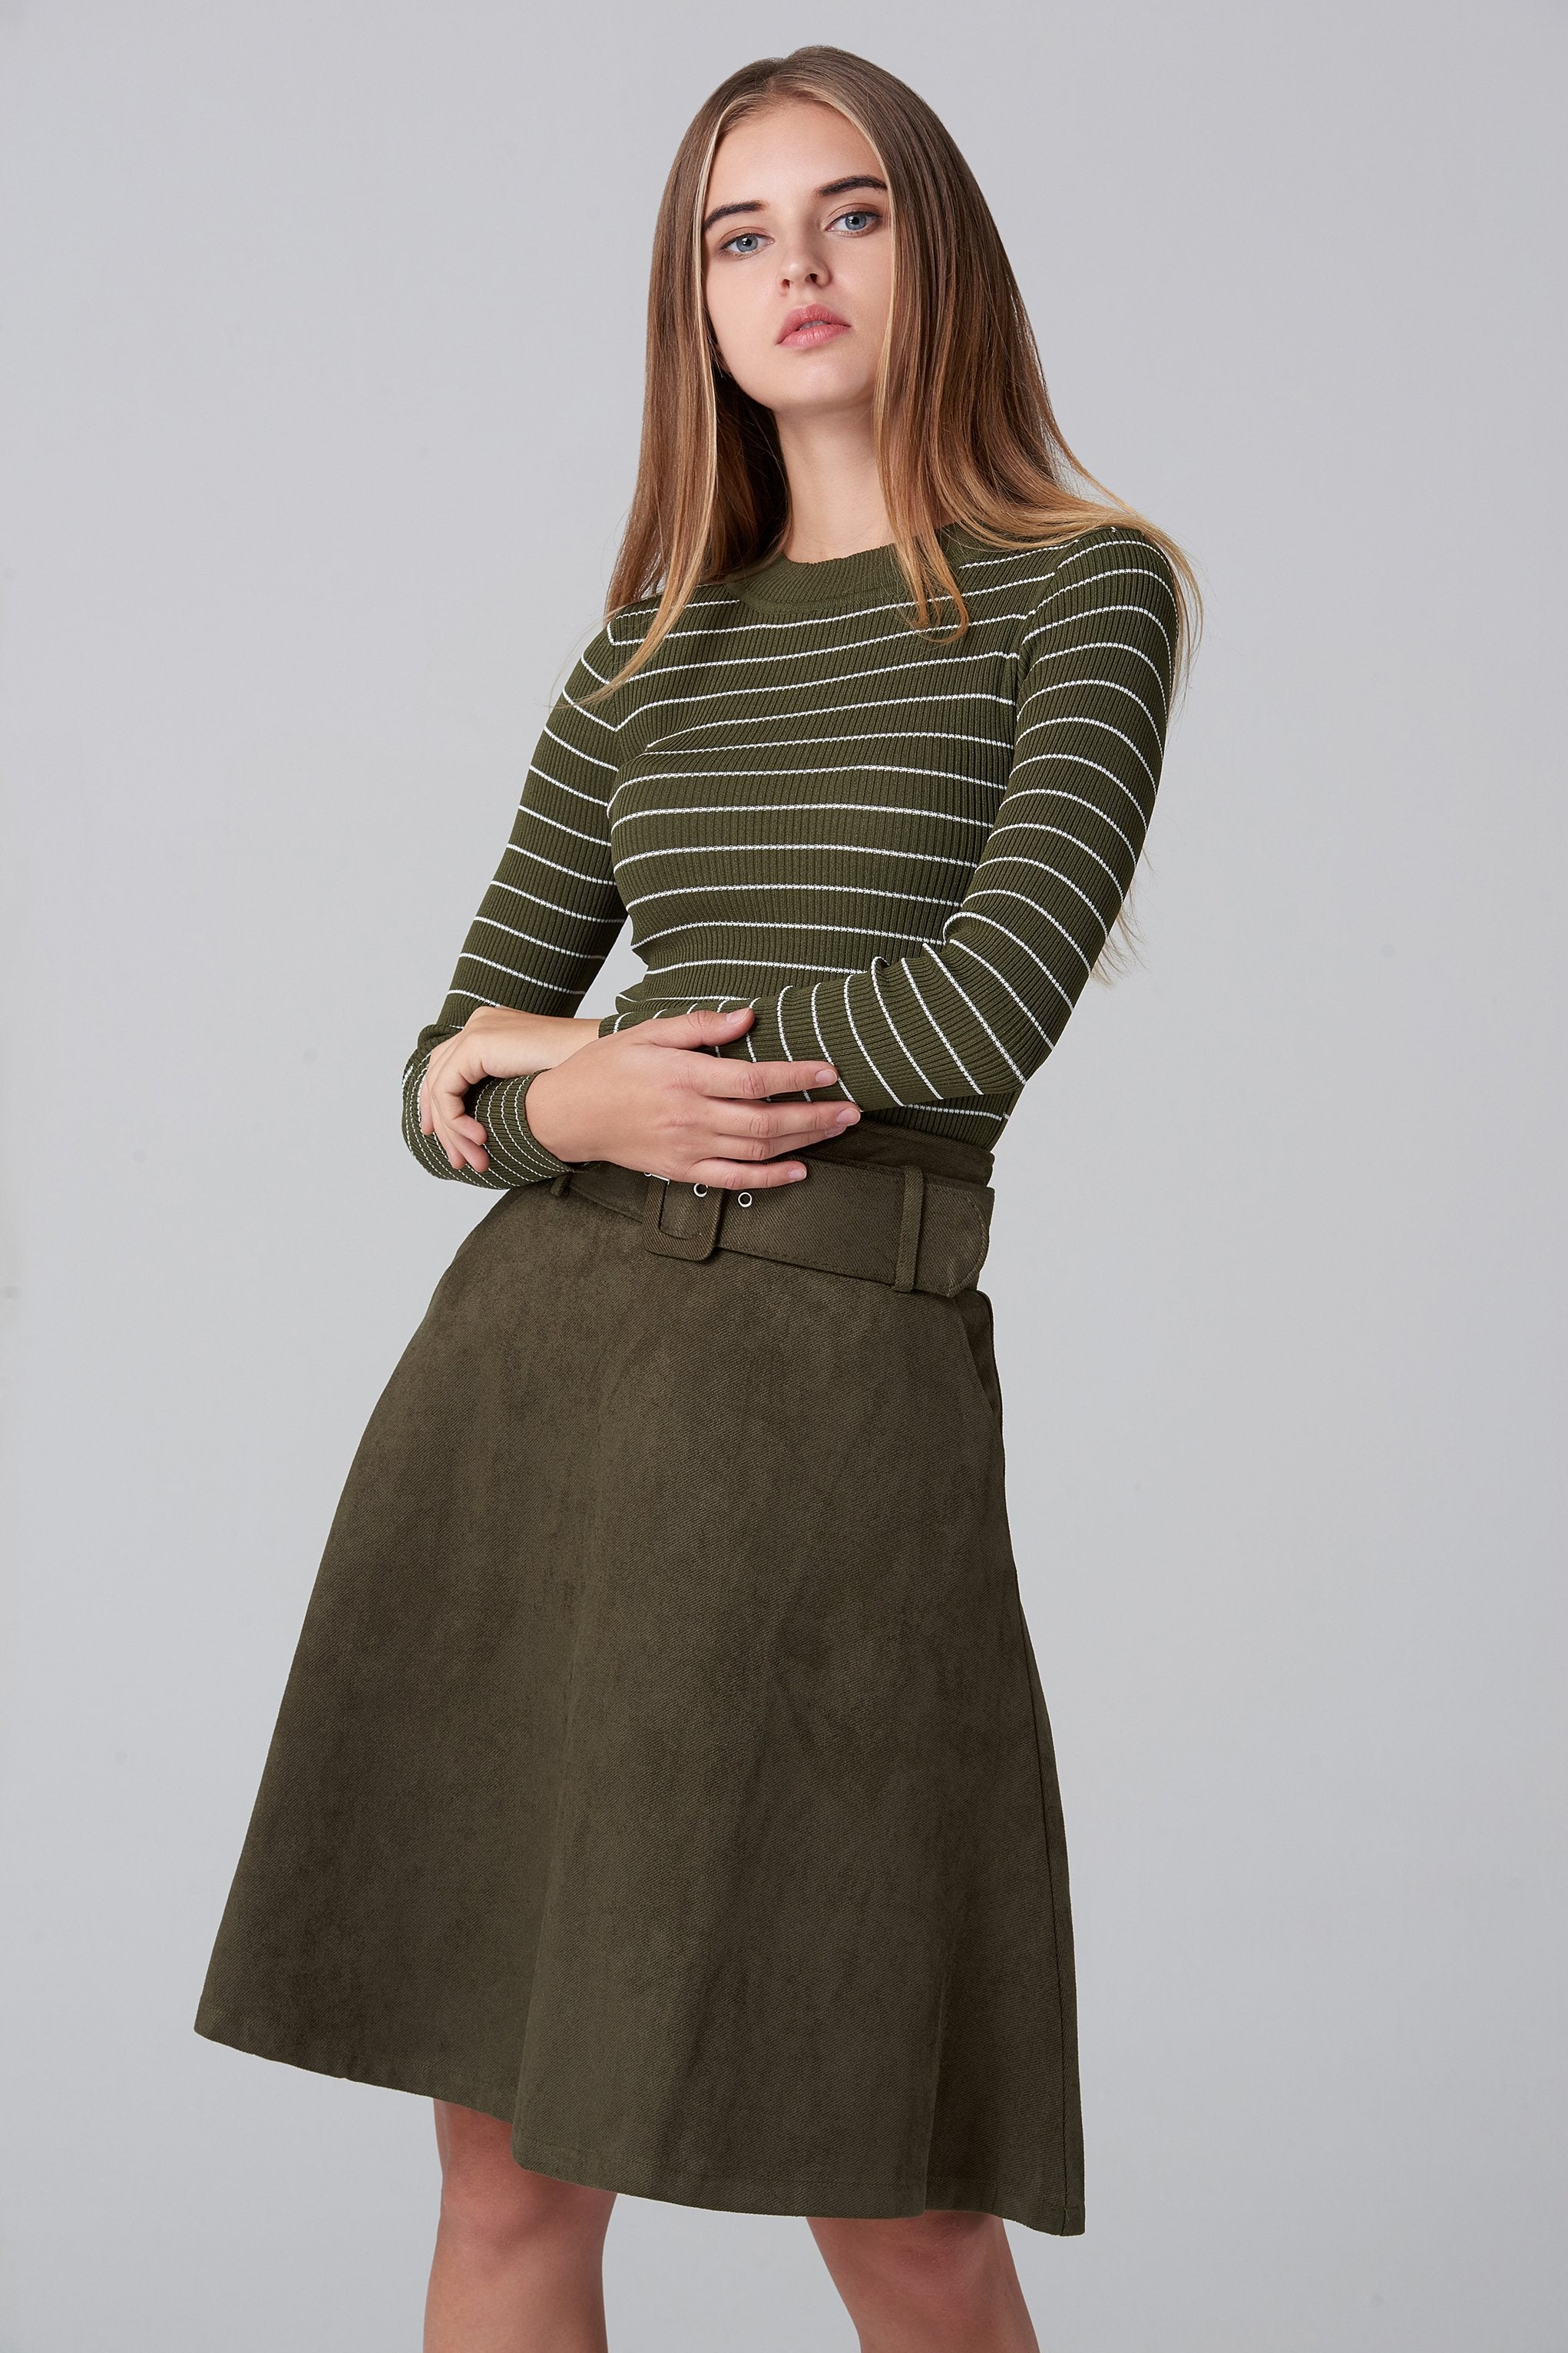 Army Green Suede Skirt and Stripe Top Set